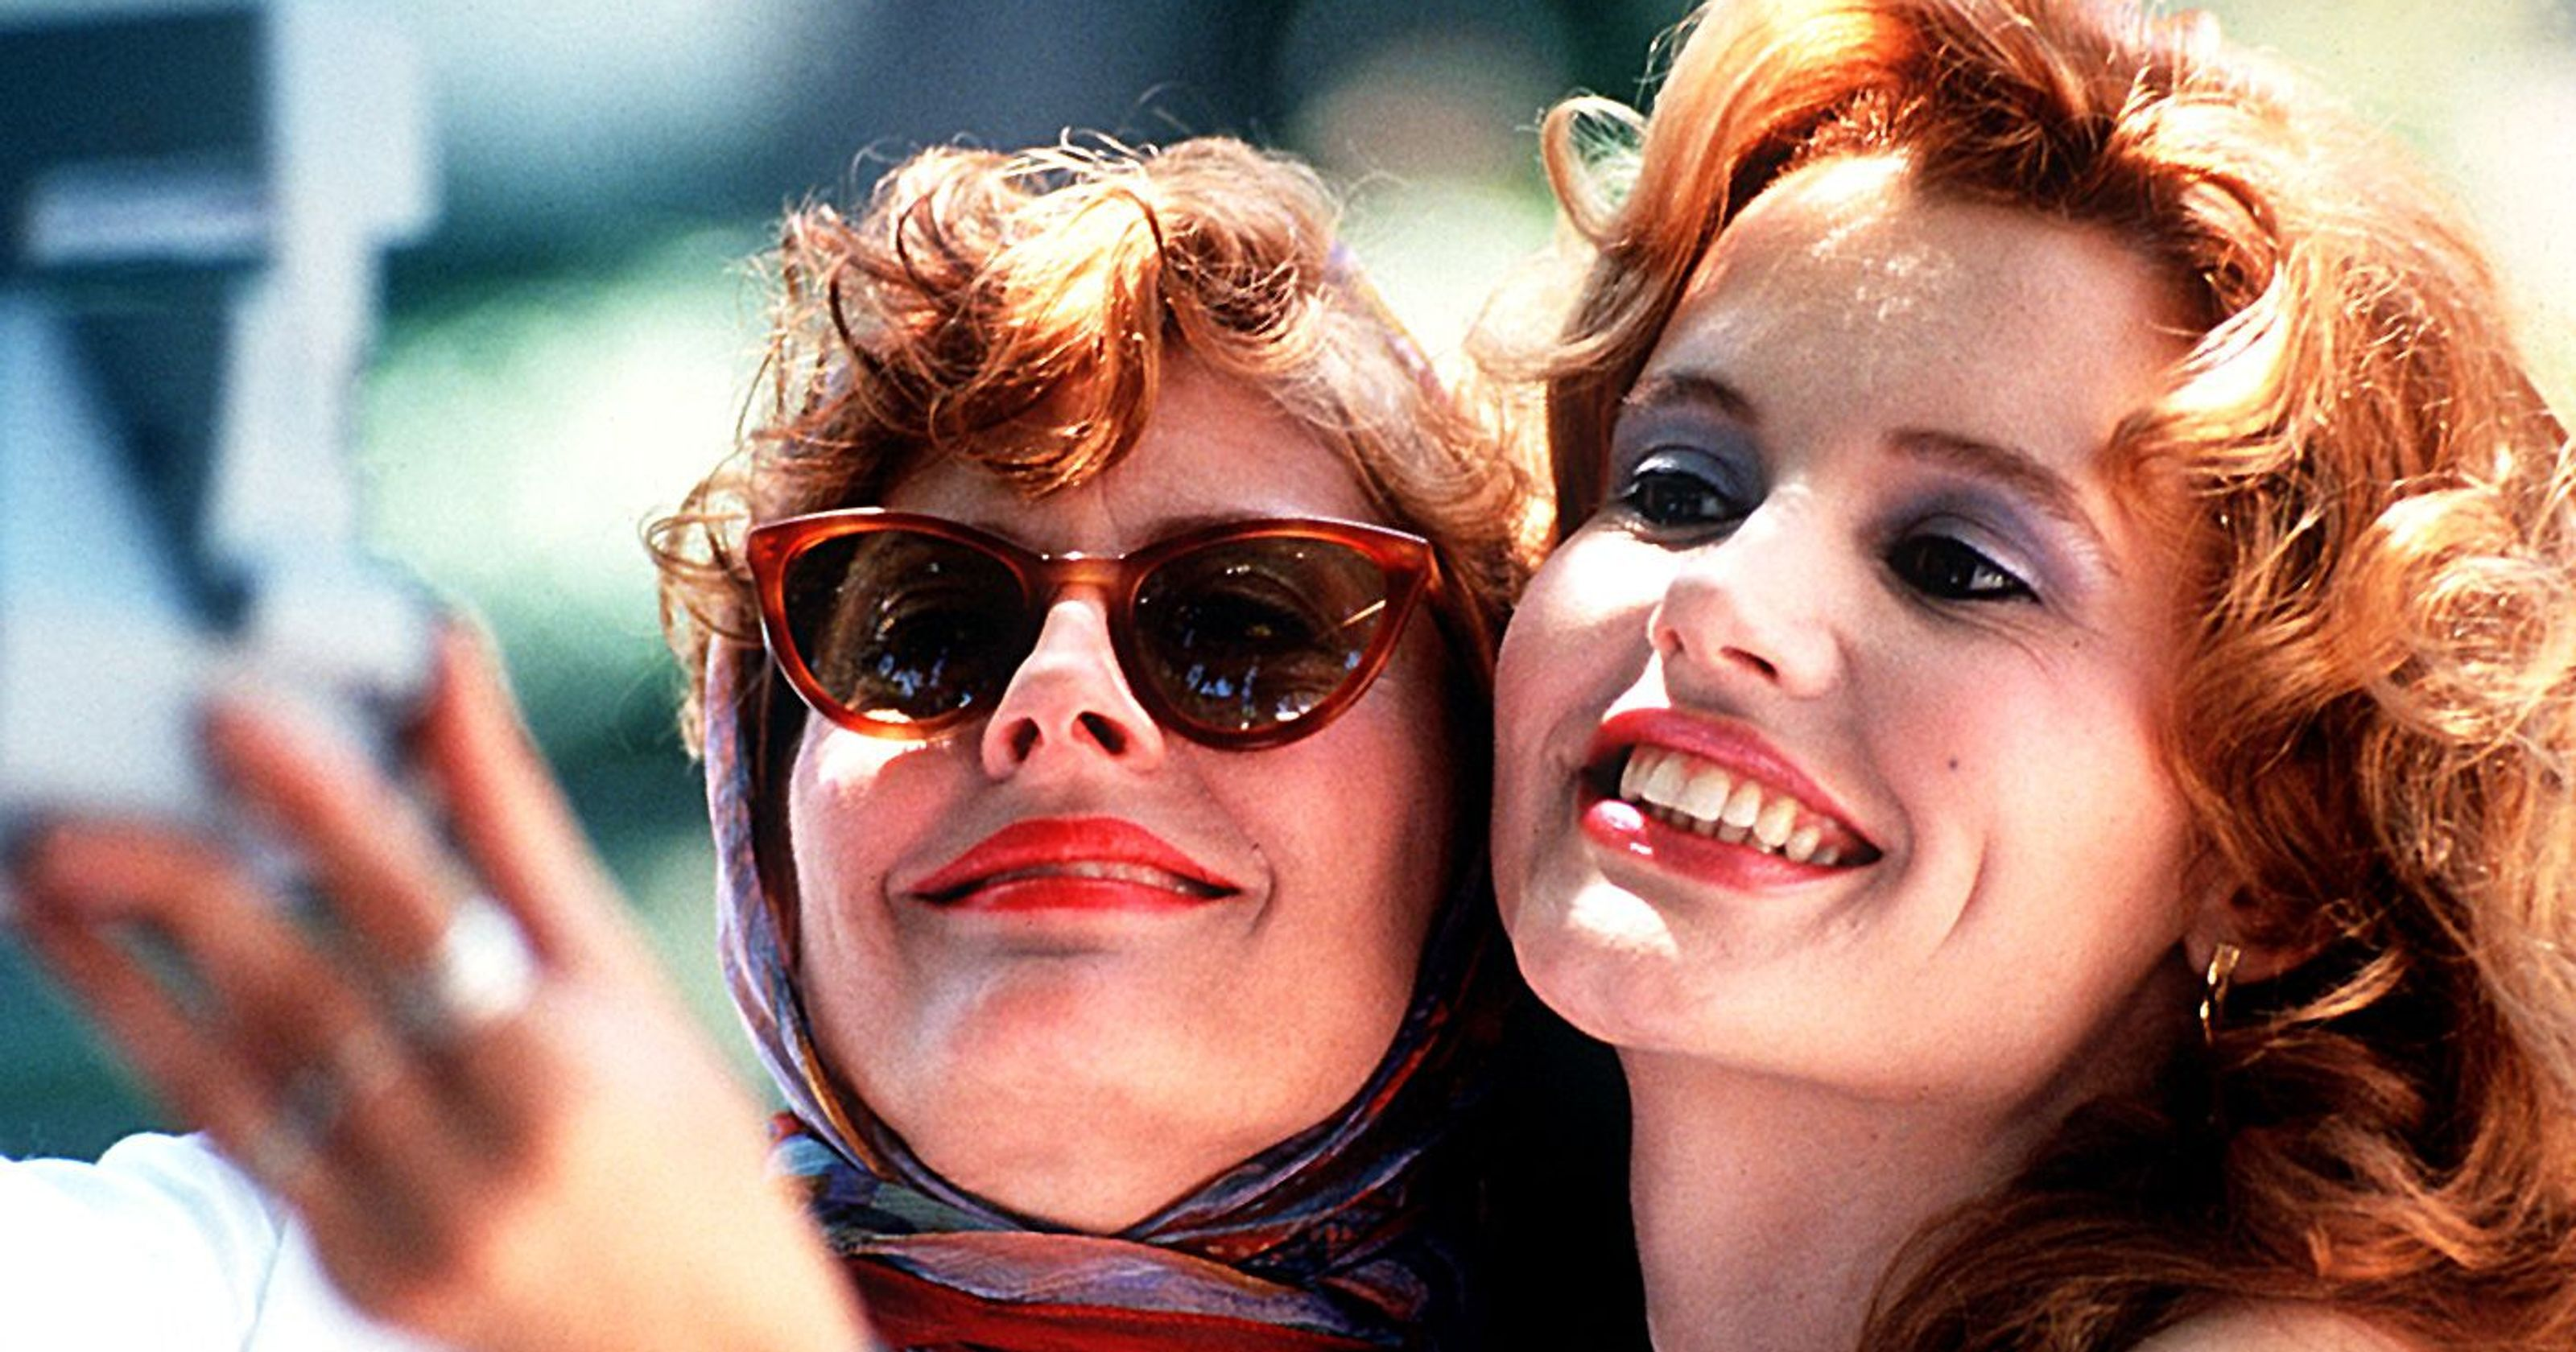 Geena Davis and Susan Sarandon	in Thelma & Louise